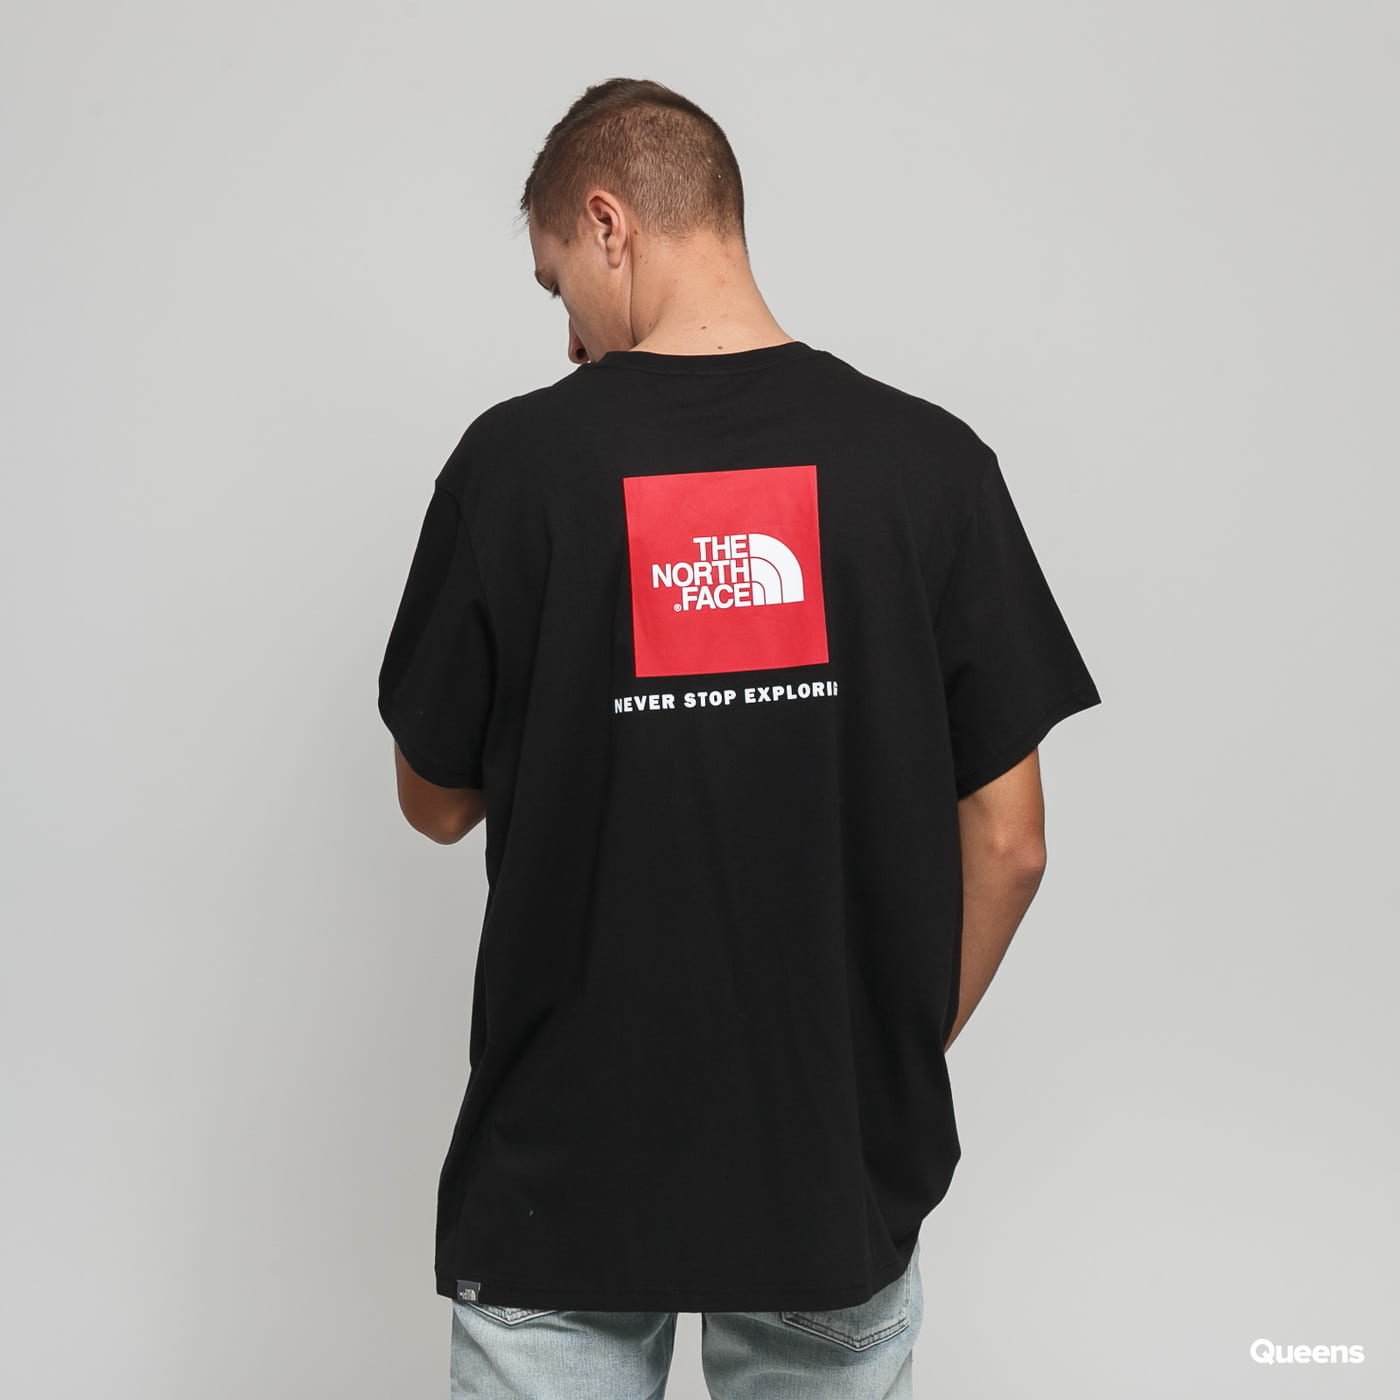 The North Face Red Box black